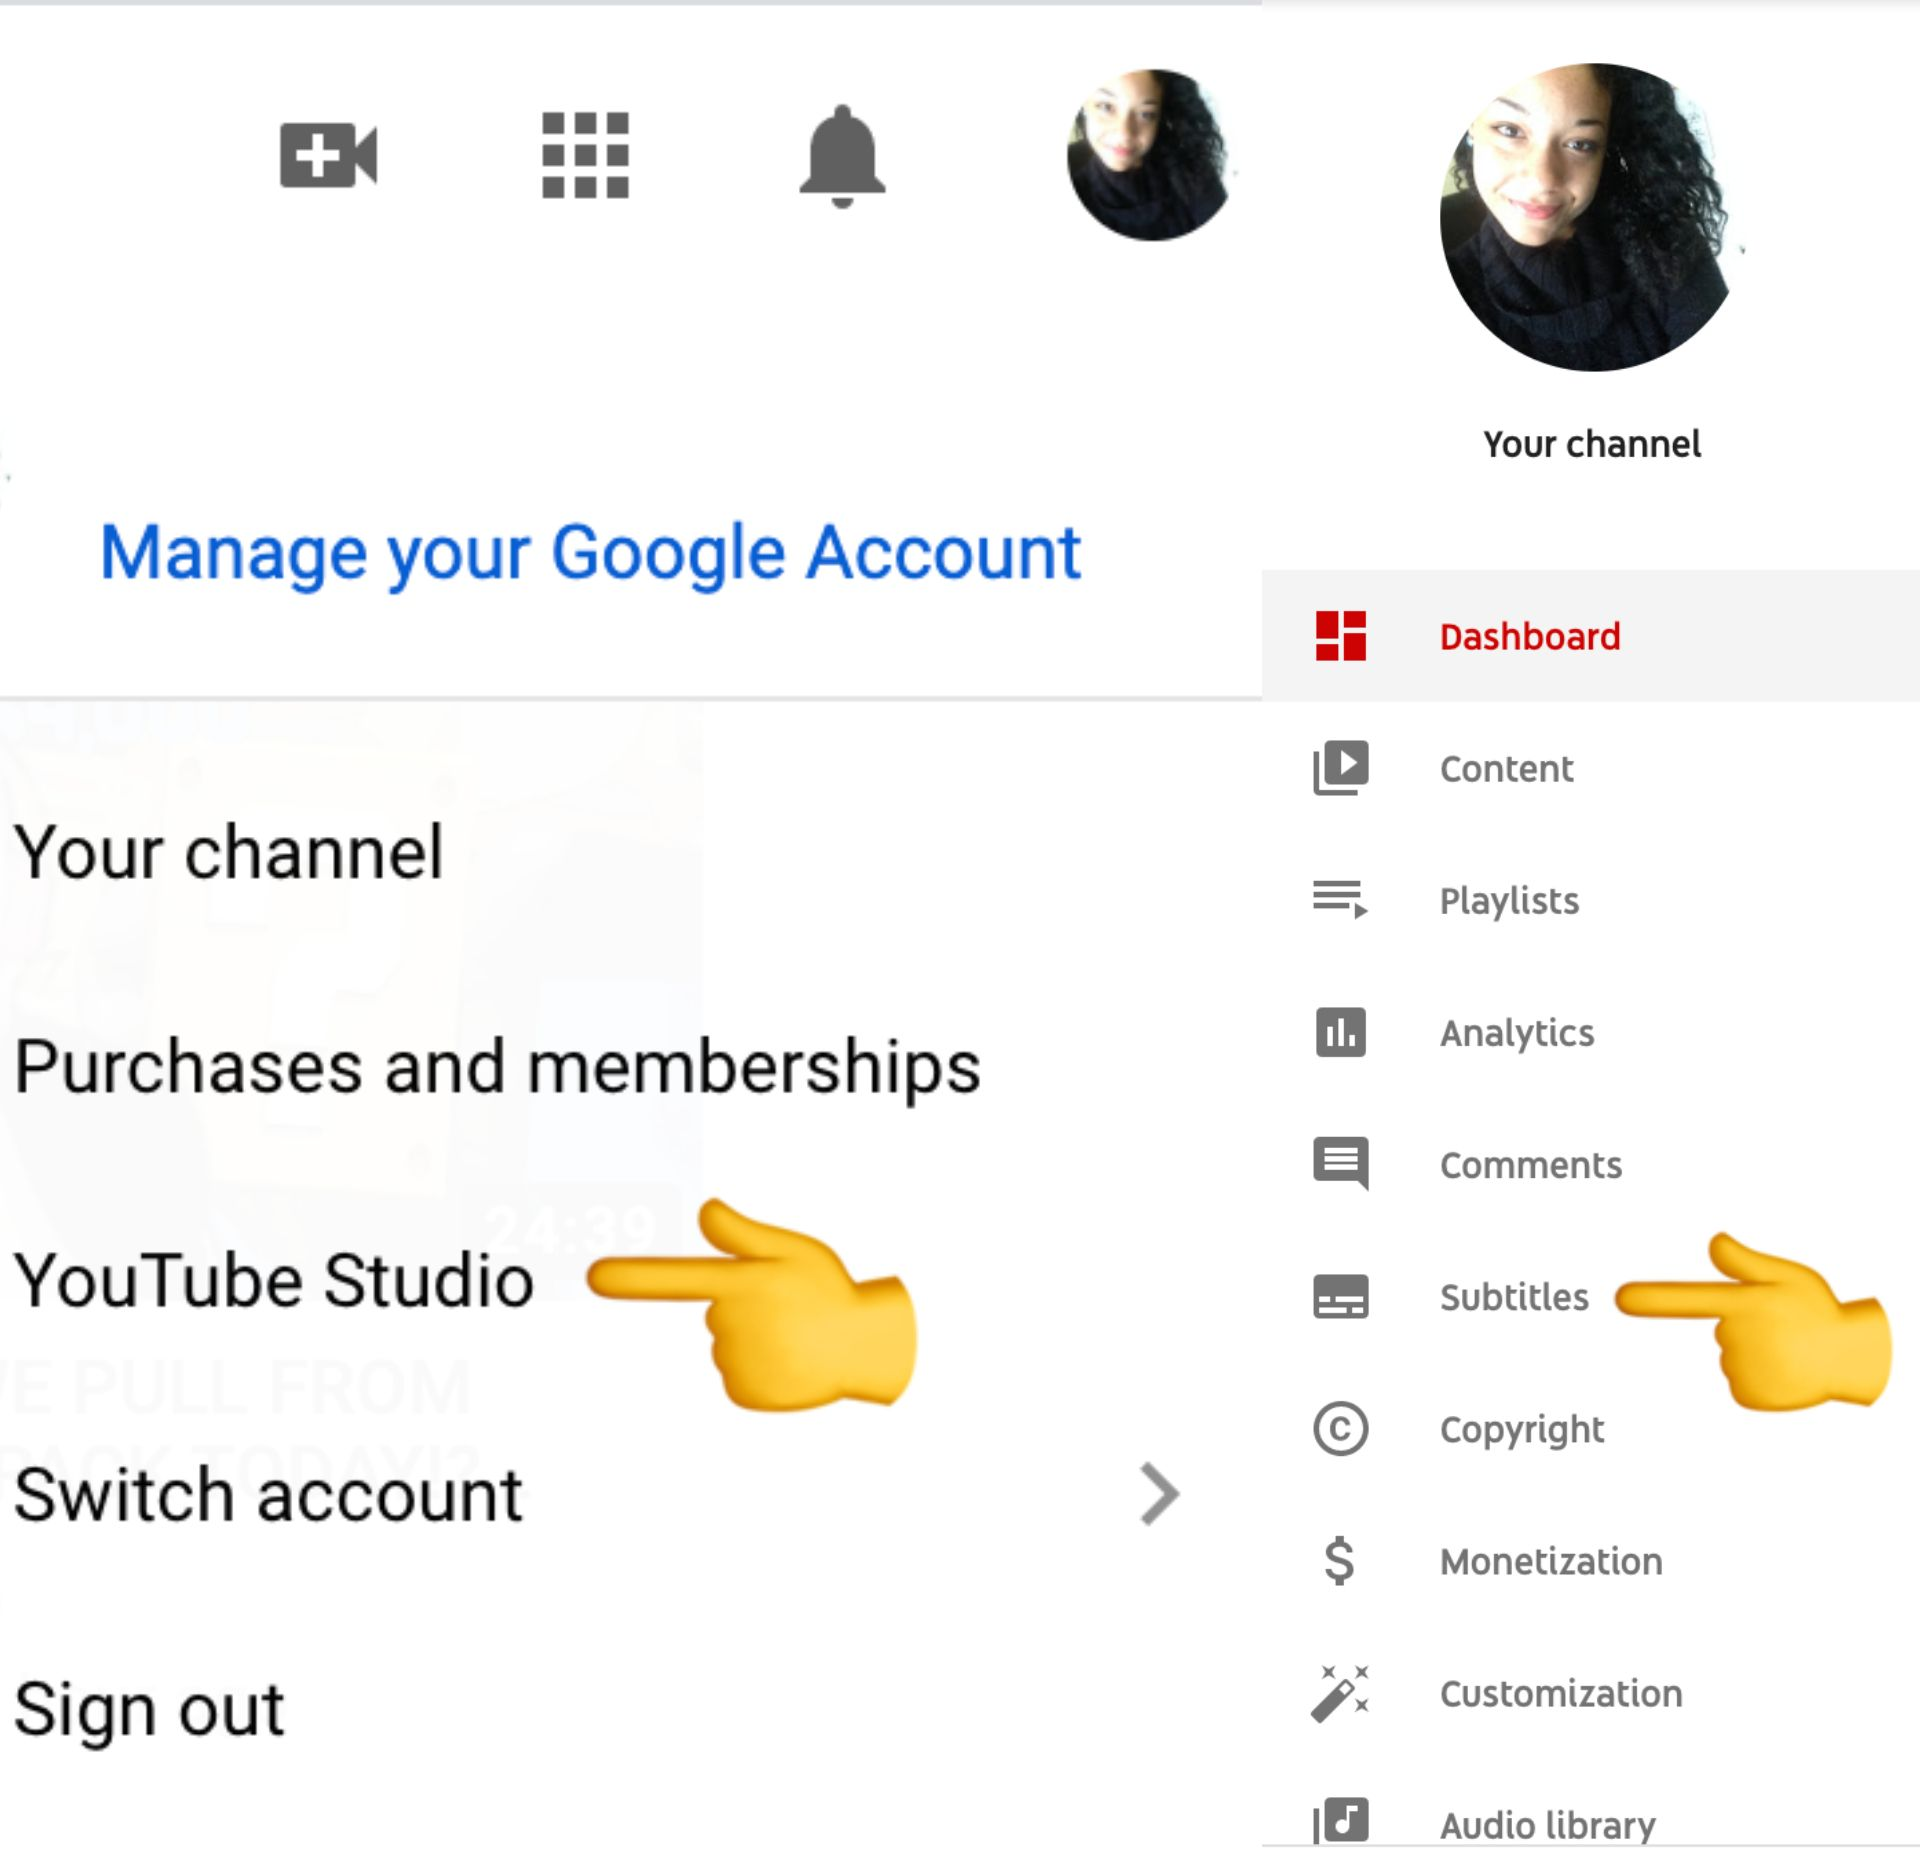 screenshot of the YouTube Studio with an emoji pointing to the word subtitles